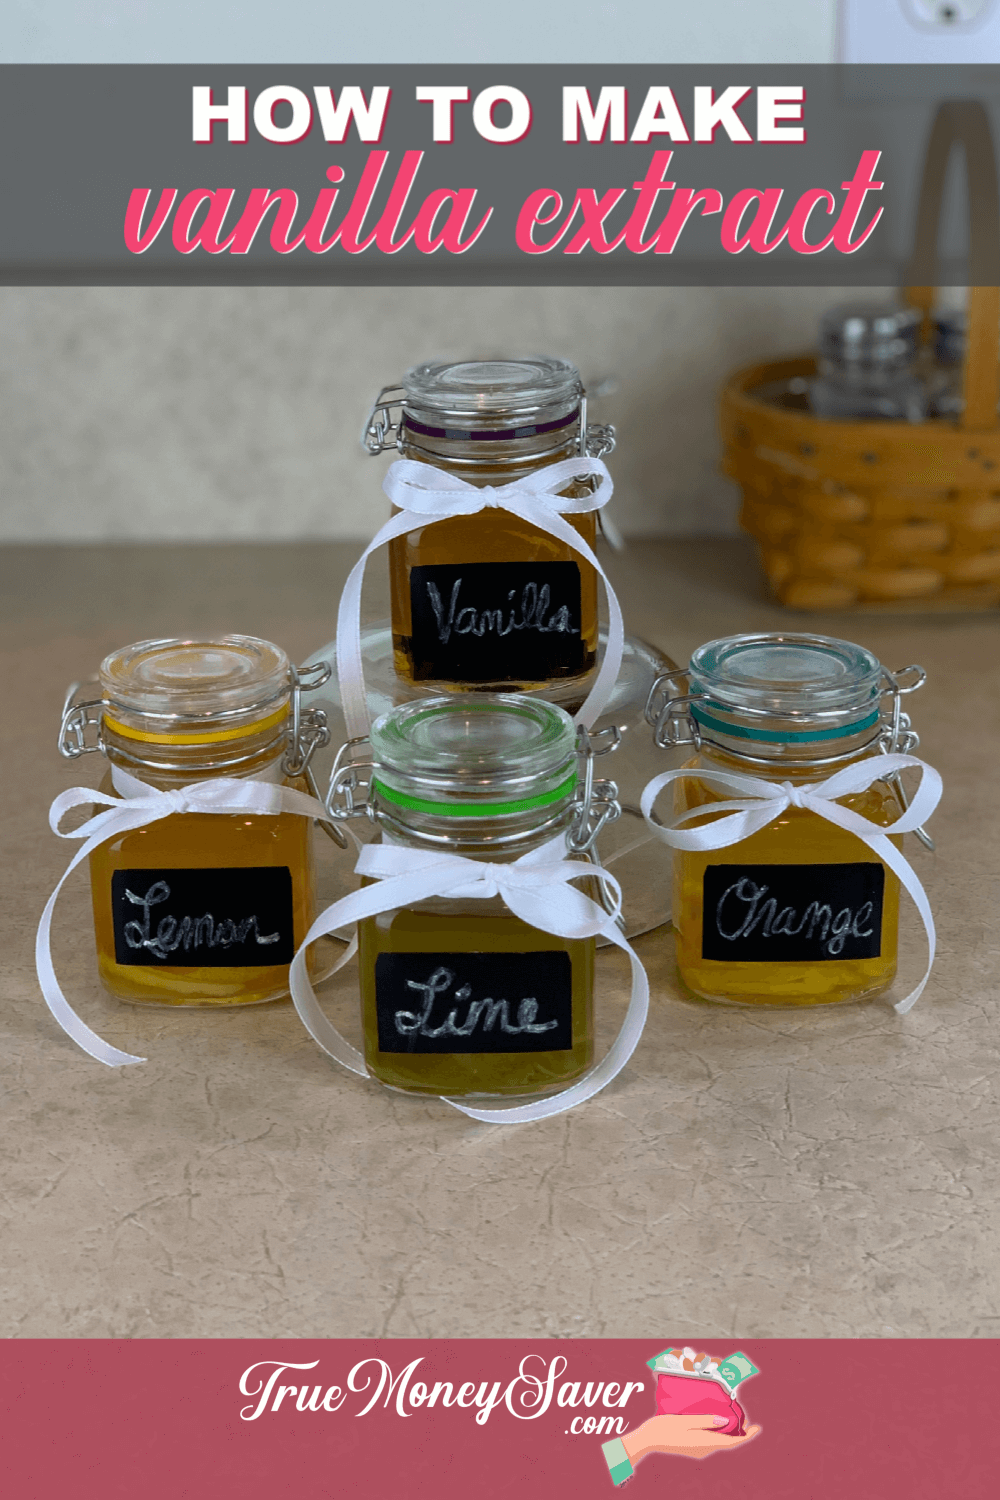 Did you know that this homemade vanilla extract recipe is just one of the extracts that you can make for gifts this year? Plus, these homemade extracts recipes are frugal to make! When you learn how to make vanilla extract, you\'re also learning how to make all the baking extract flavors! Let get extract making!